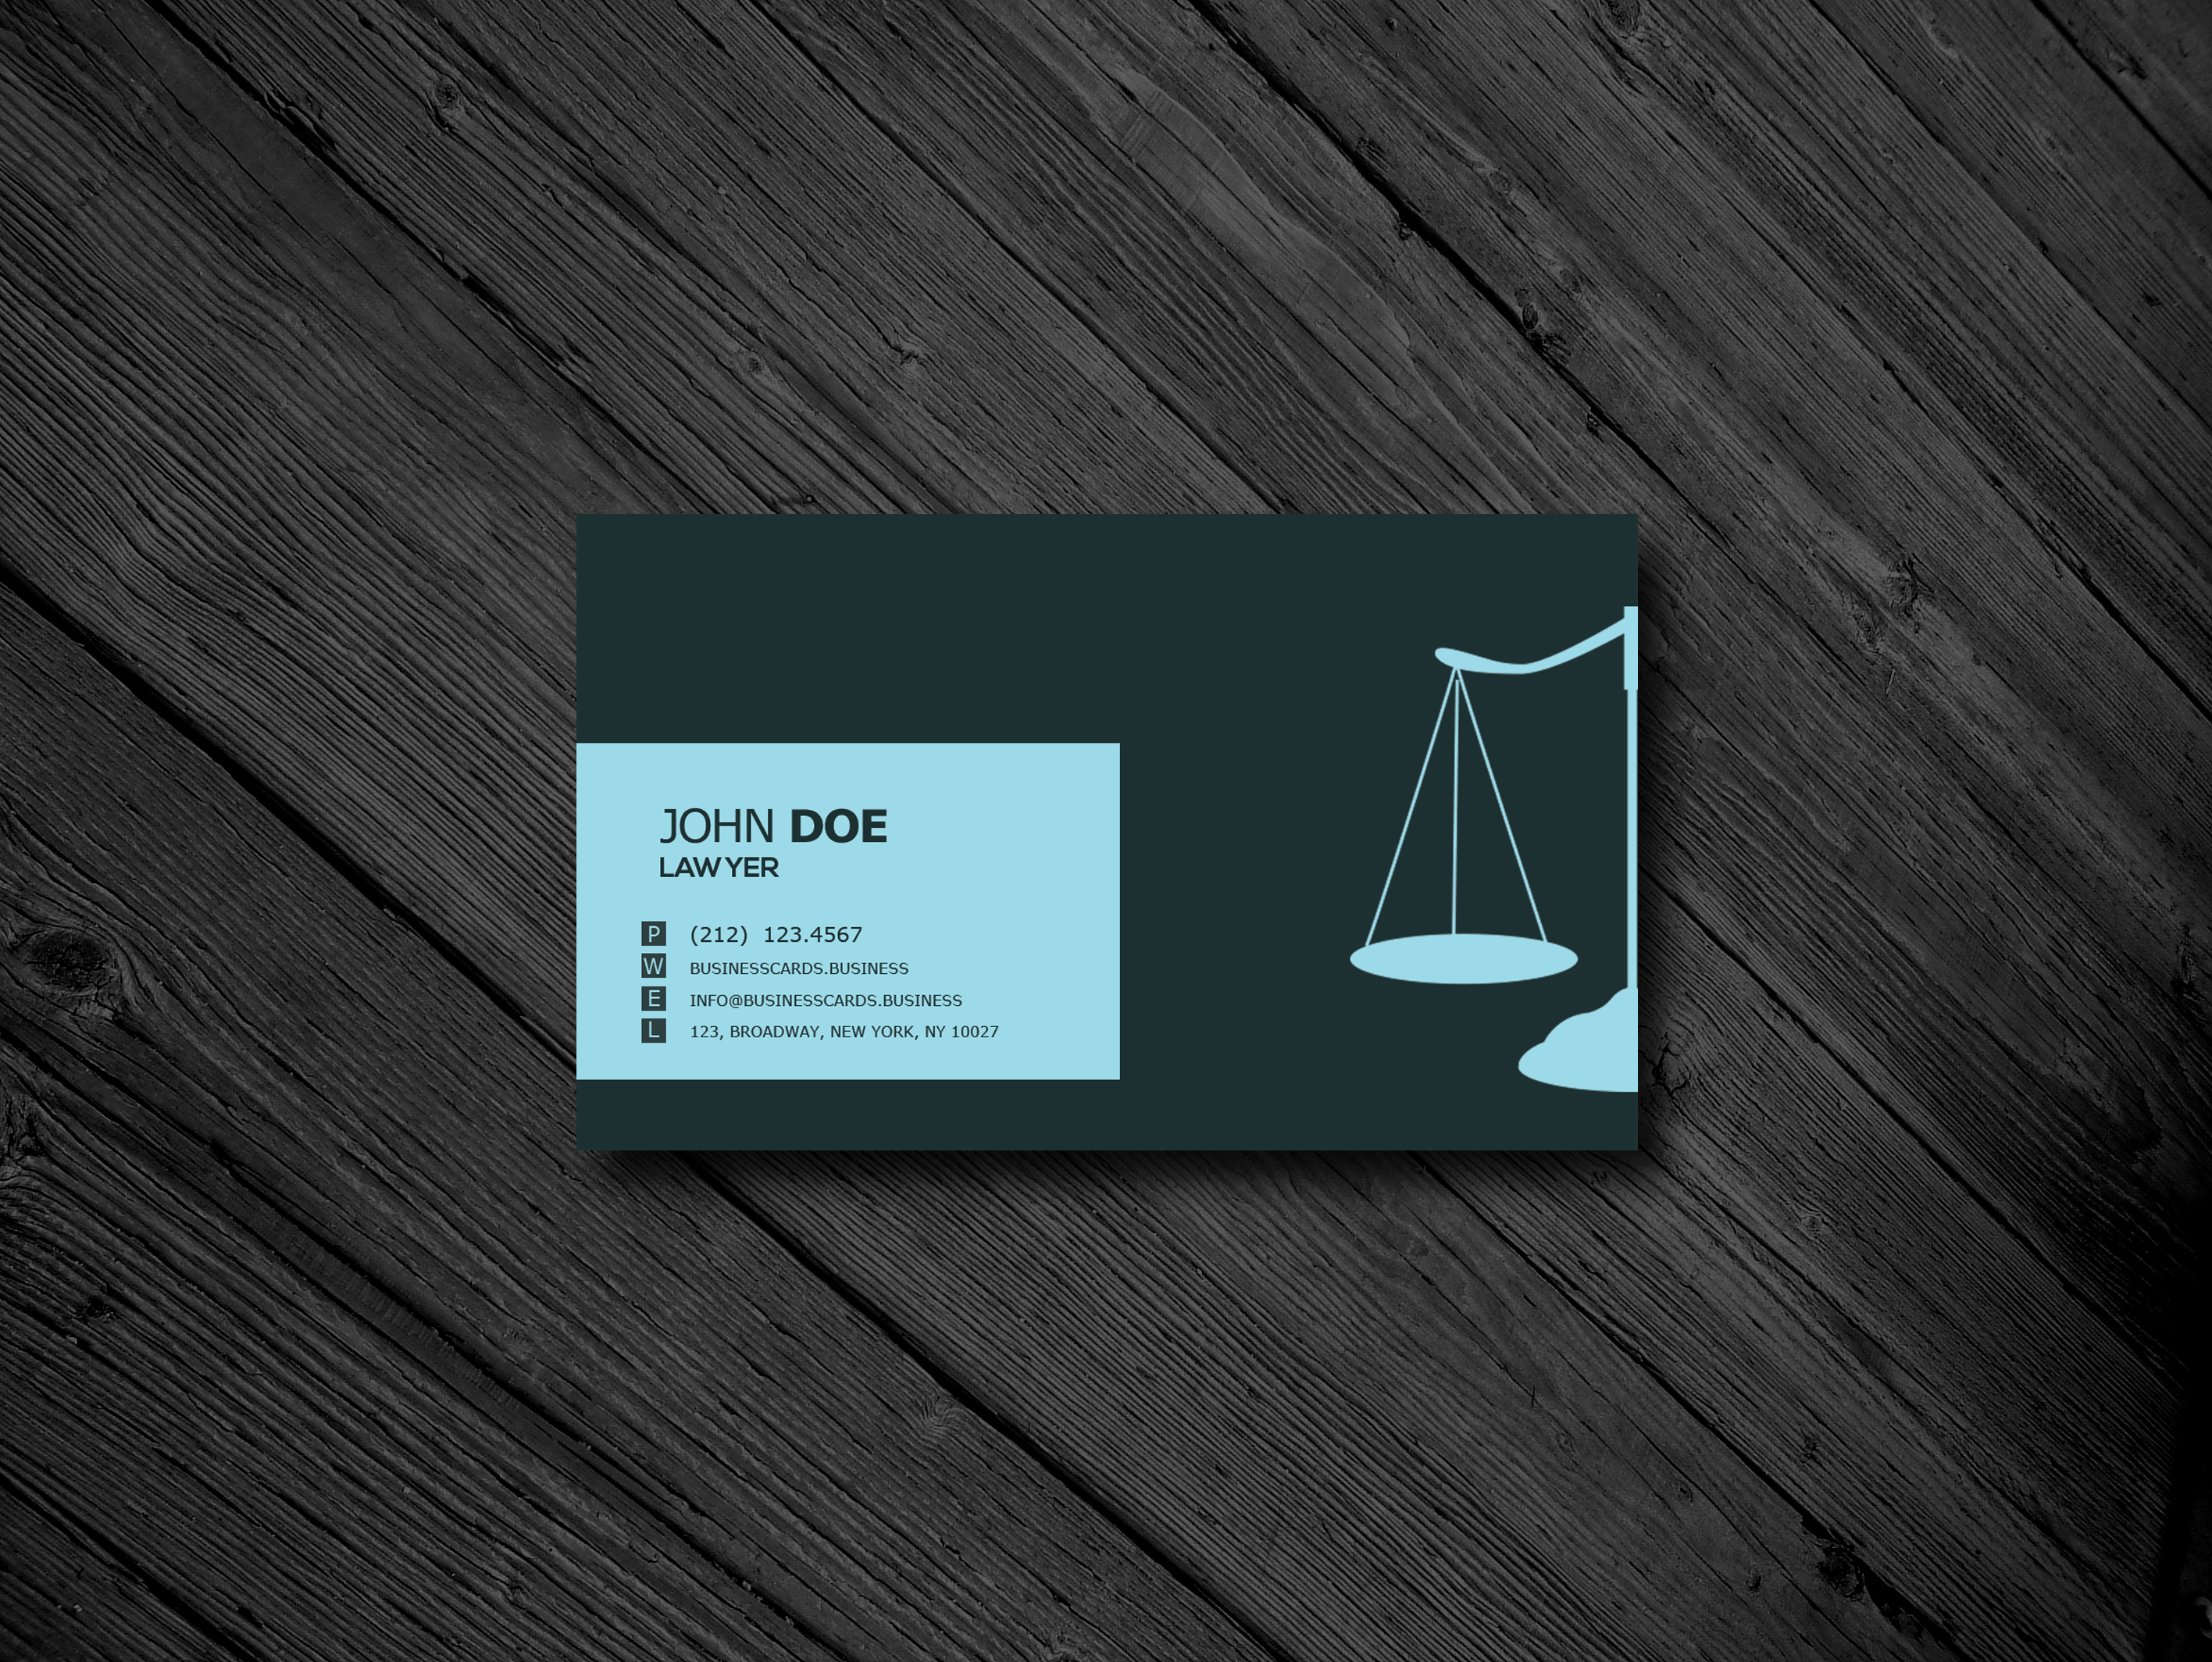 Free business card templates business cards templates free lawyer business card psd template accmission